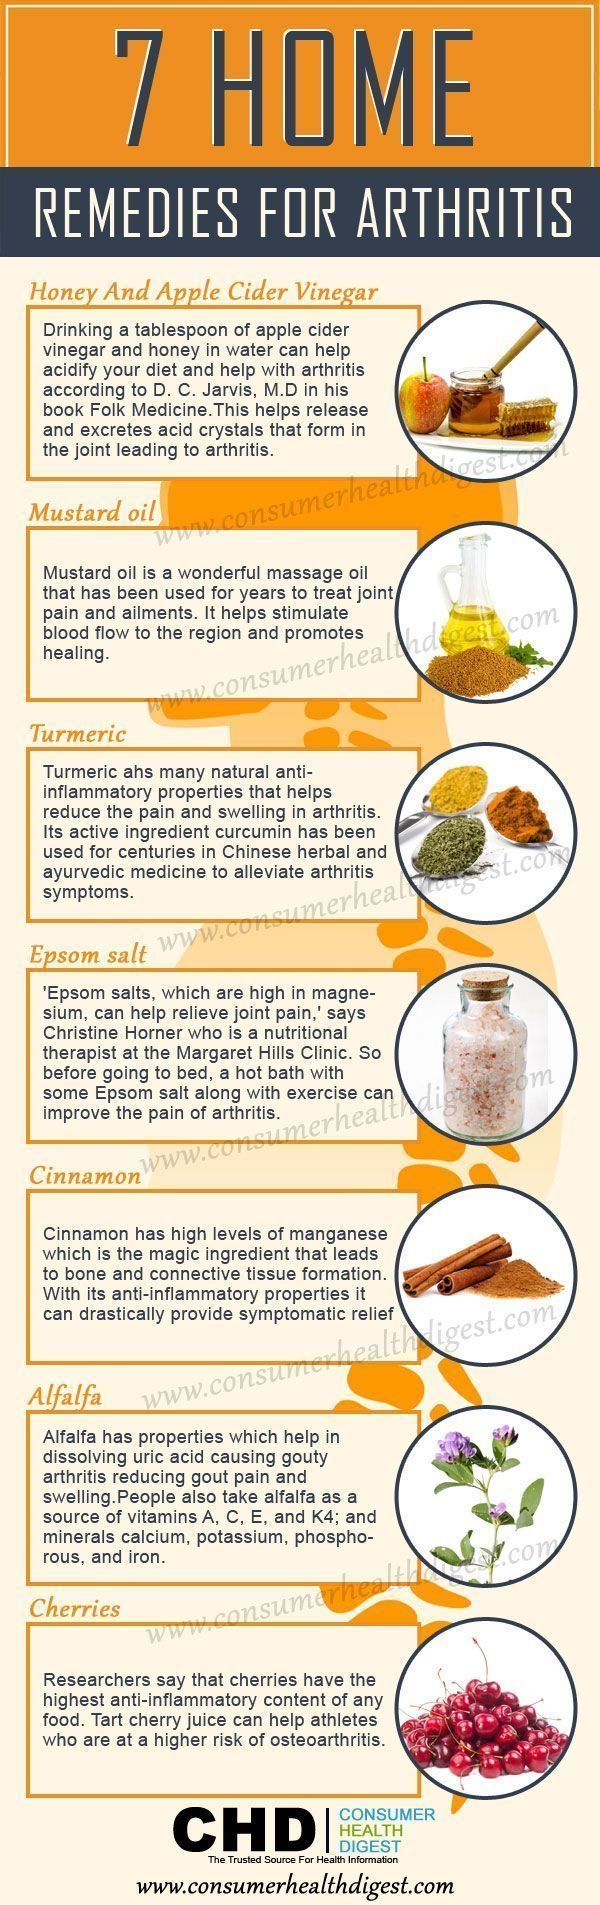 chemical medications or natural healing These natural remedies are often used in order to avoid the cost, inconvenience, and side effects of prescription drugs and invasive treatments.